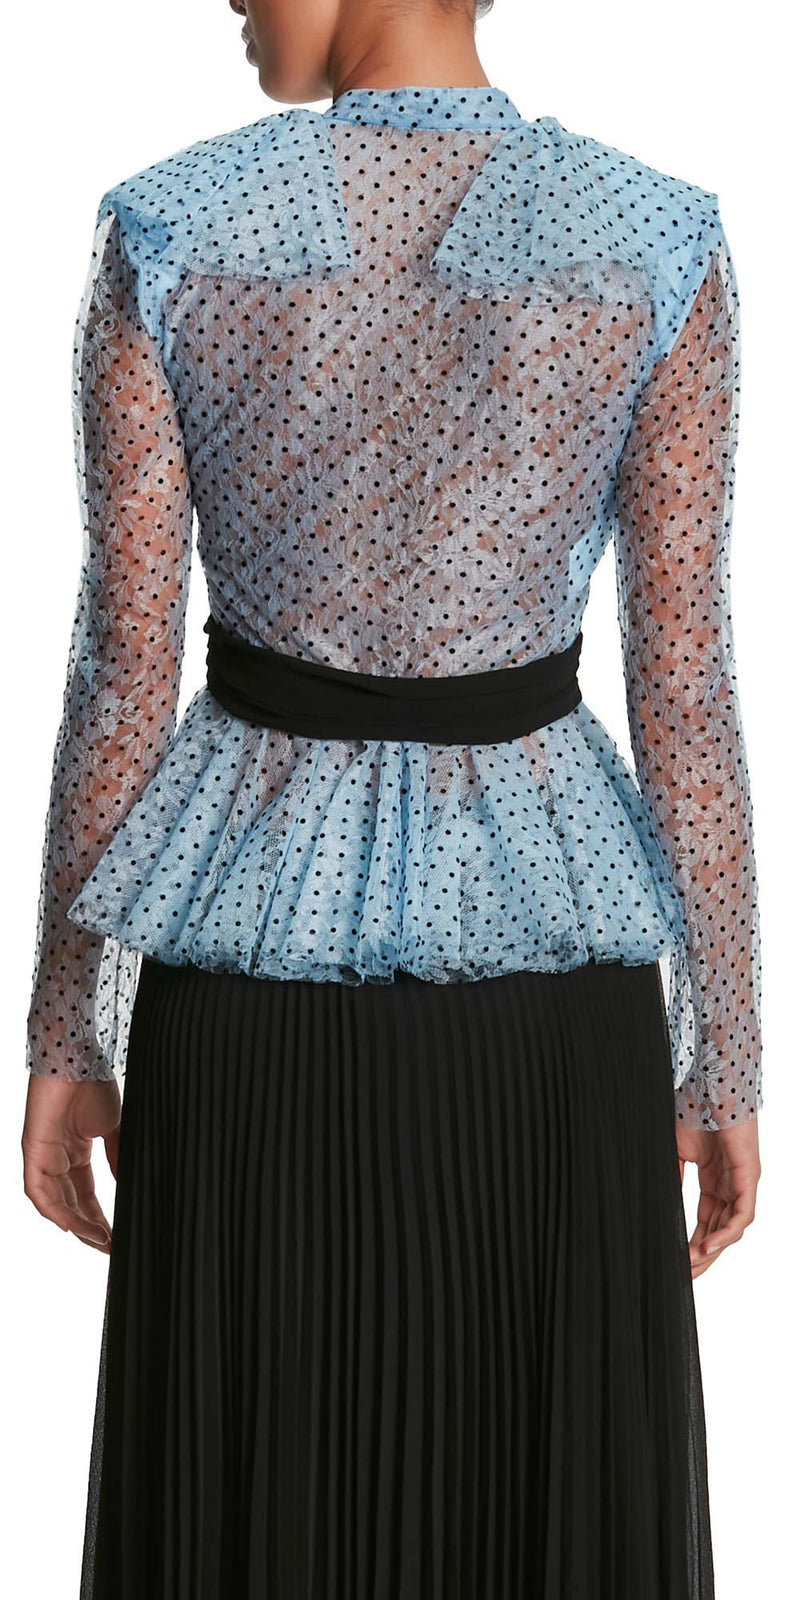 Long Sleeve Polka Dot Tulle Top